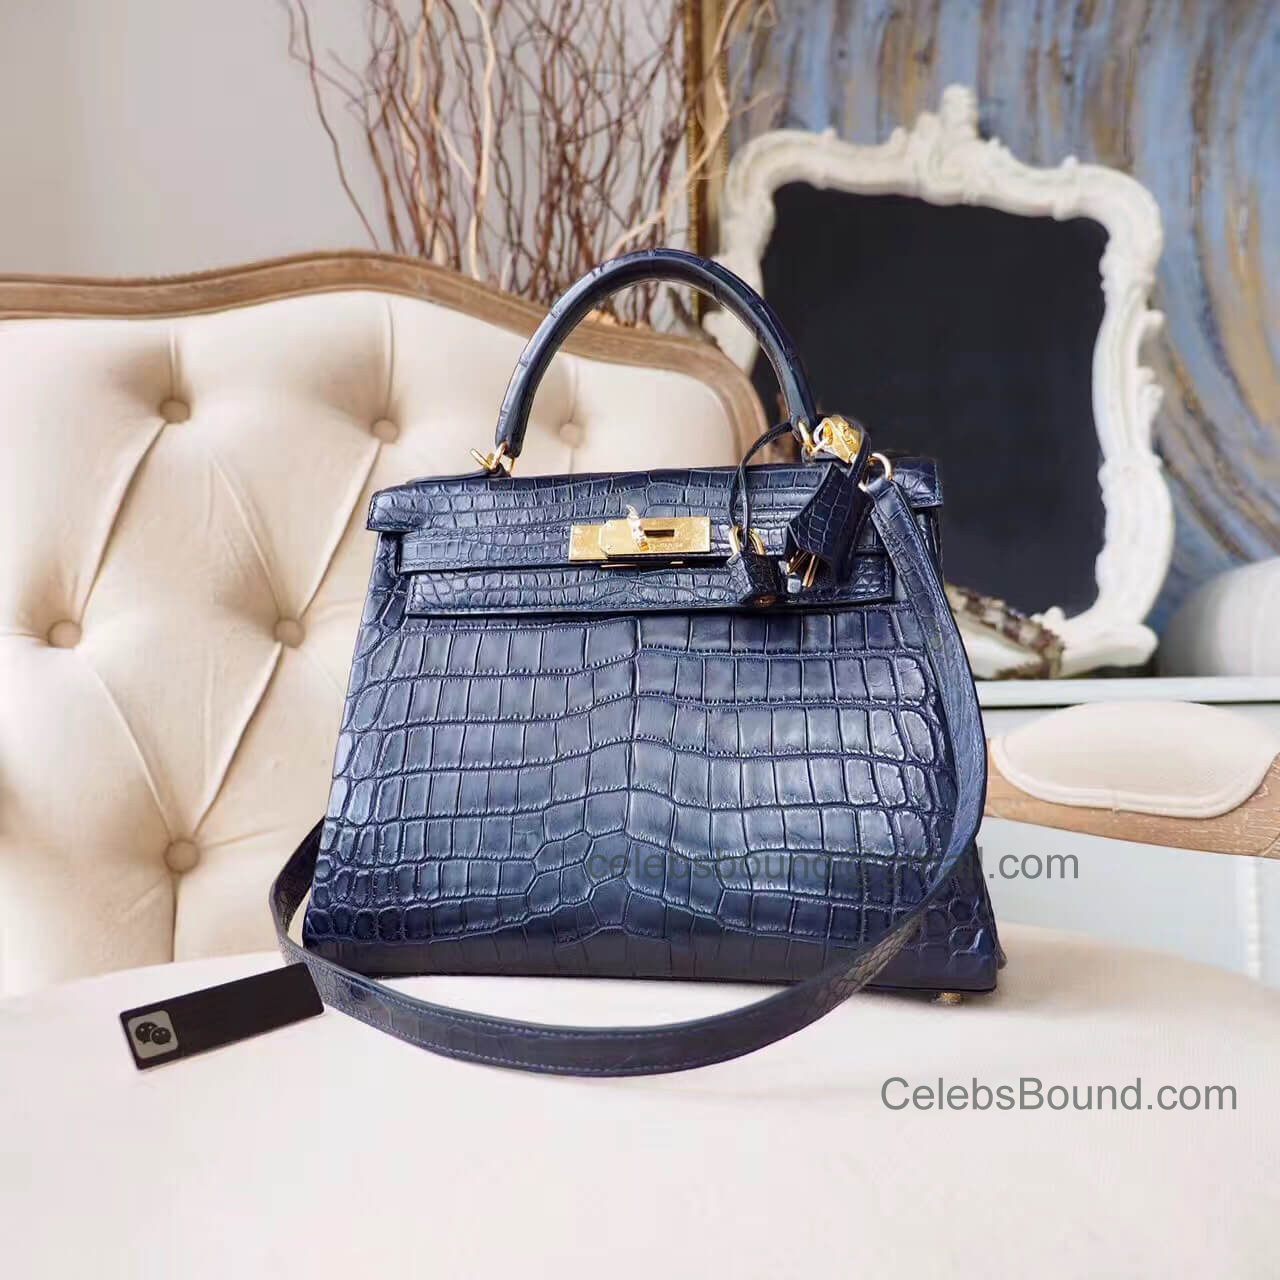 Replica Hermes Kelly 28 Bag in ck76 Blue Indigo Matte Nile Croc GHW